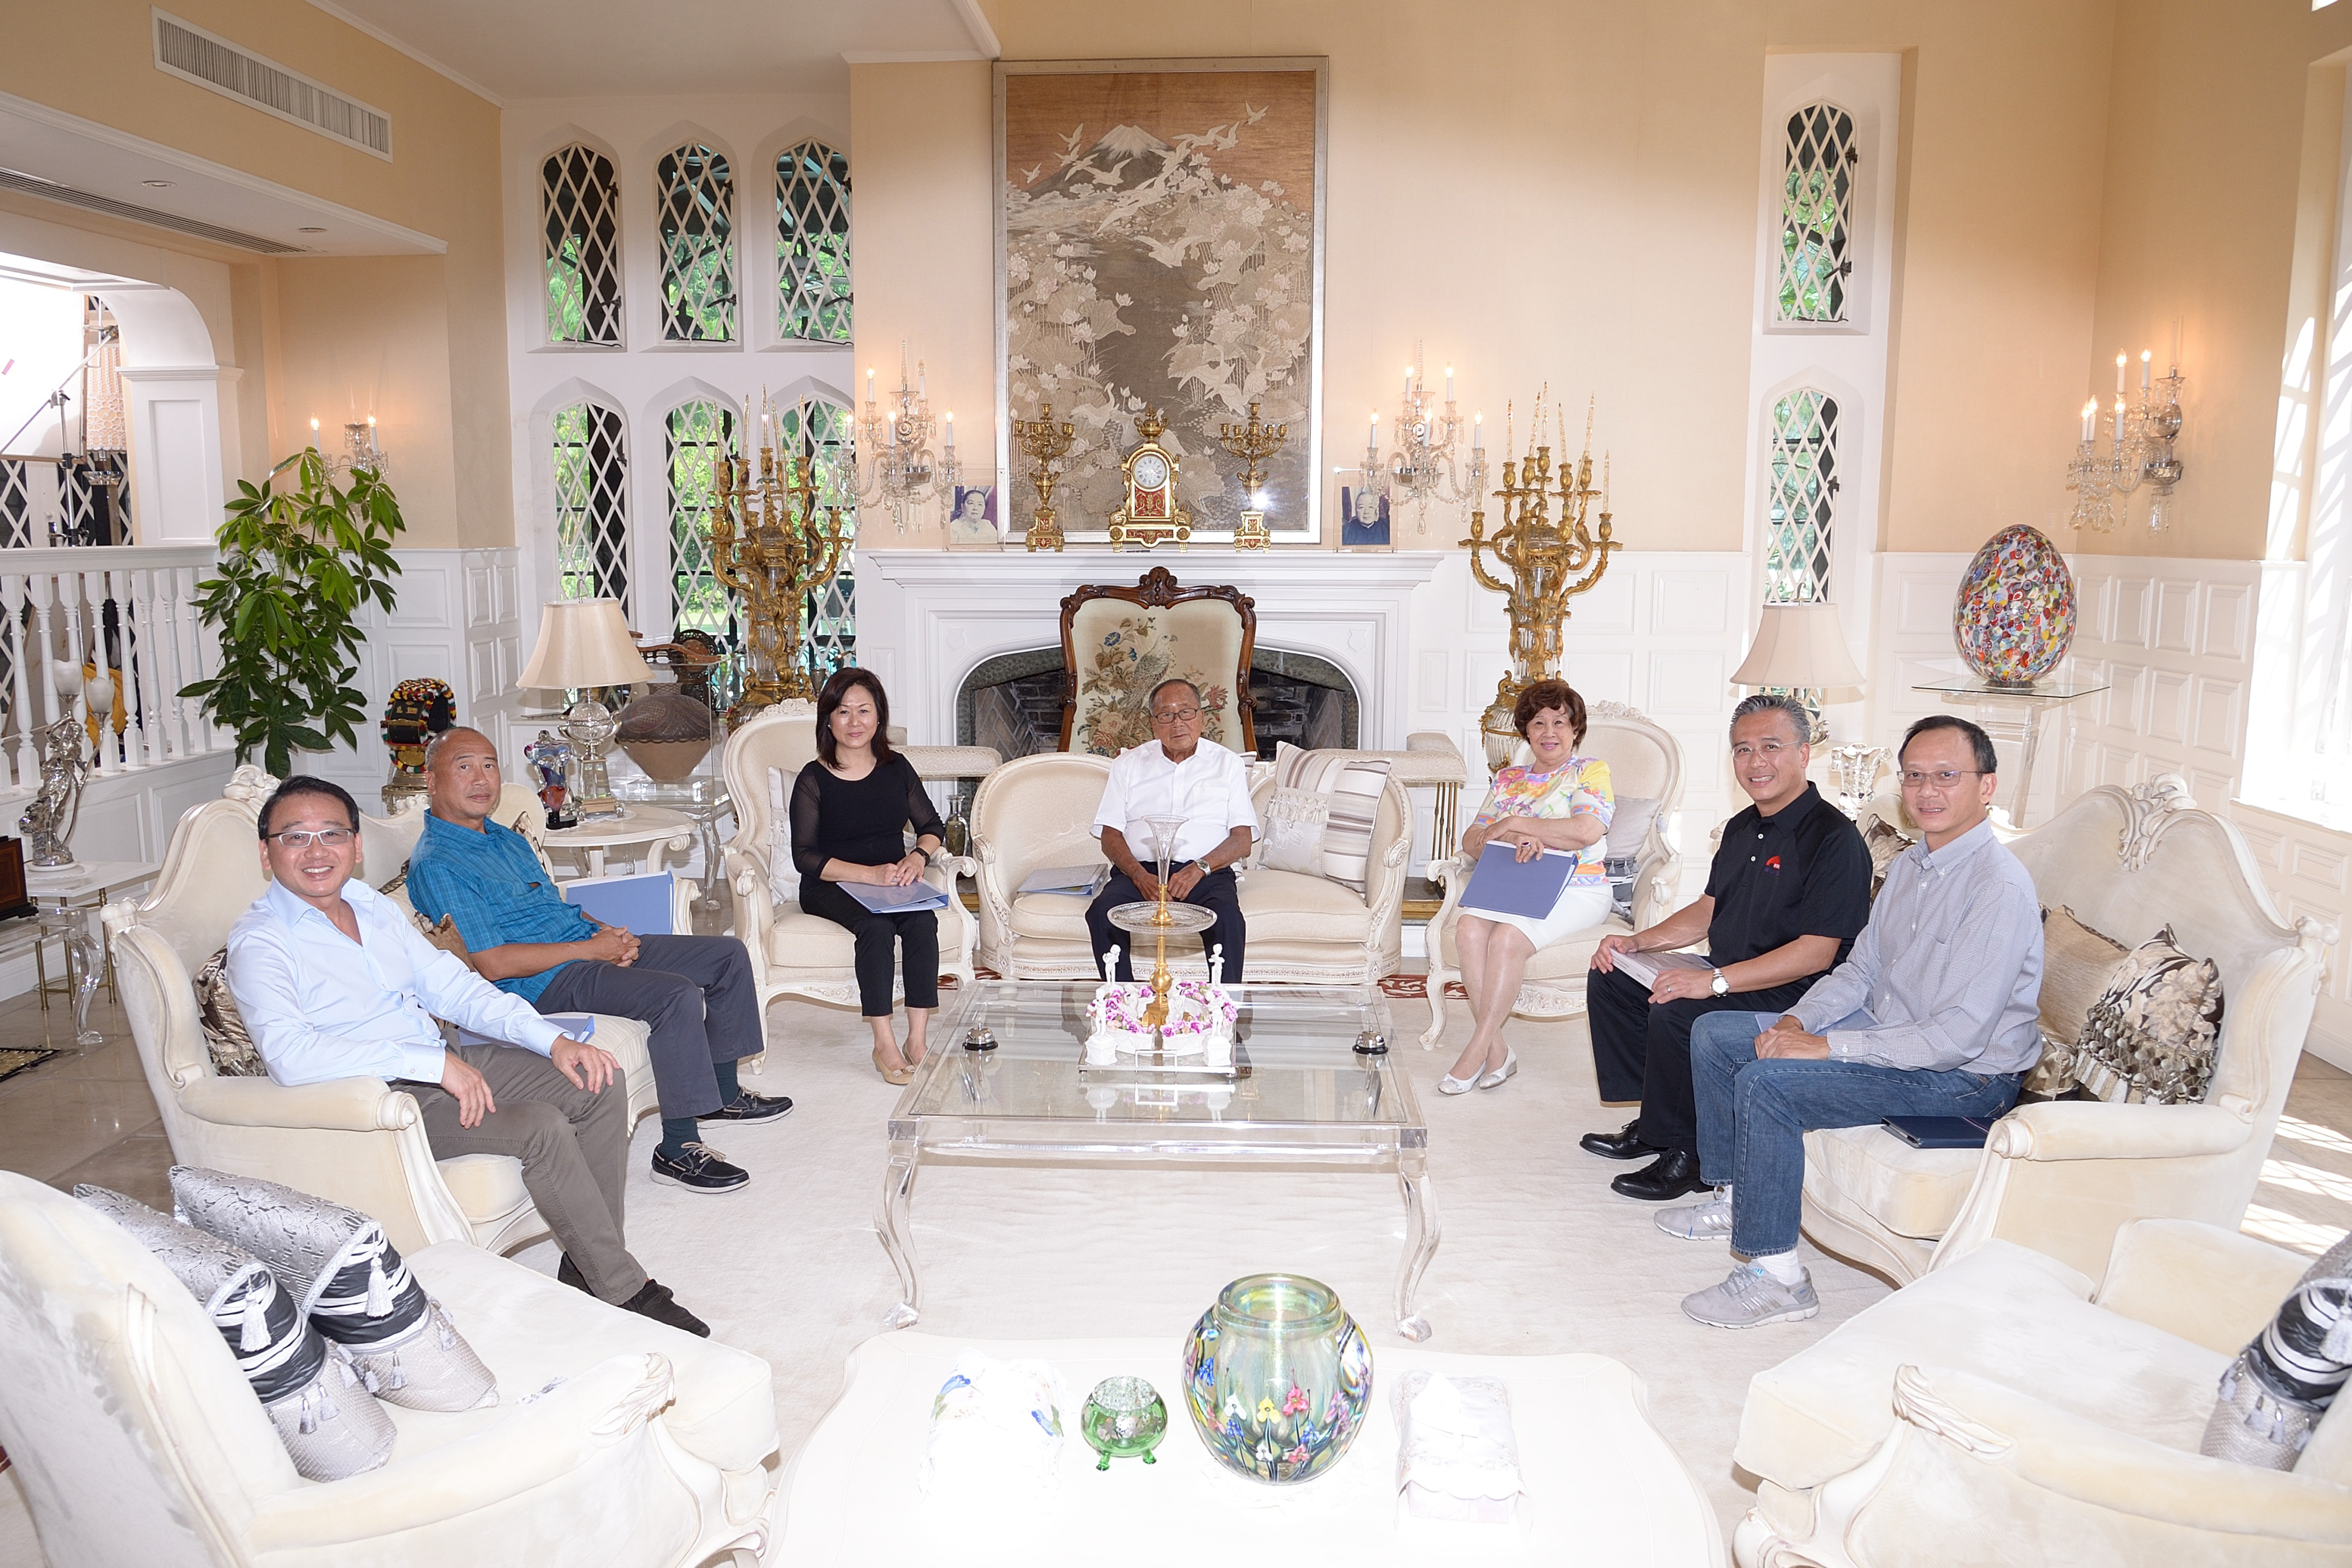 The third and the fourth generations of the Lee Kum Kee Family, from left to right: Mr. David Lee, Mr. Eddy Lee, Mrs. Elizabeth Mok, Mr. Man Tat Lee, Mrs. Man Tat Lee, Mr. Charlie Lee, Mr. Sammy Lee